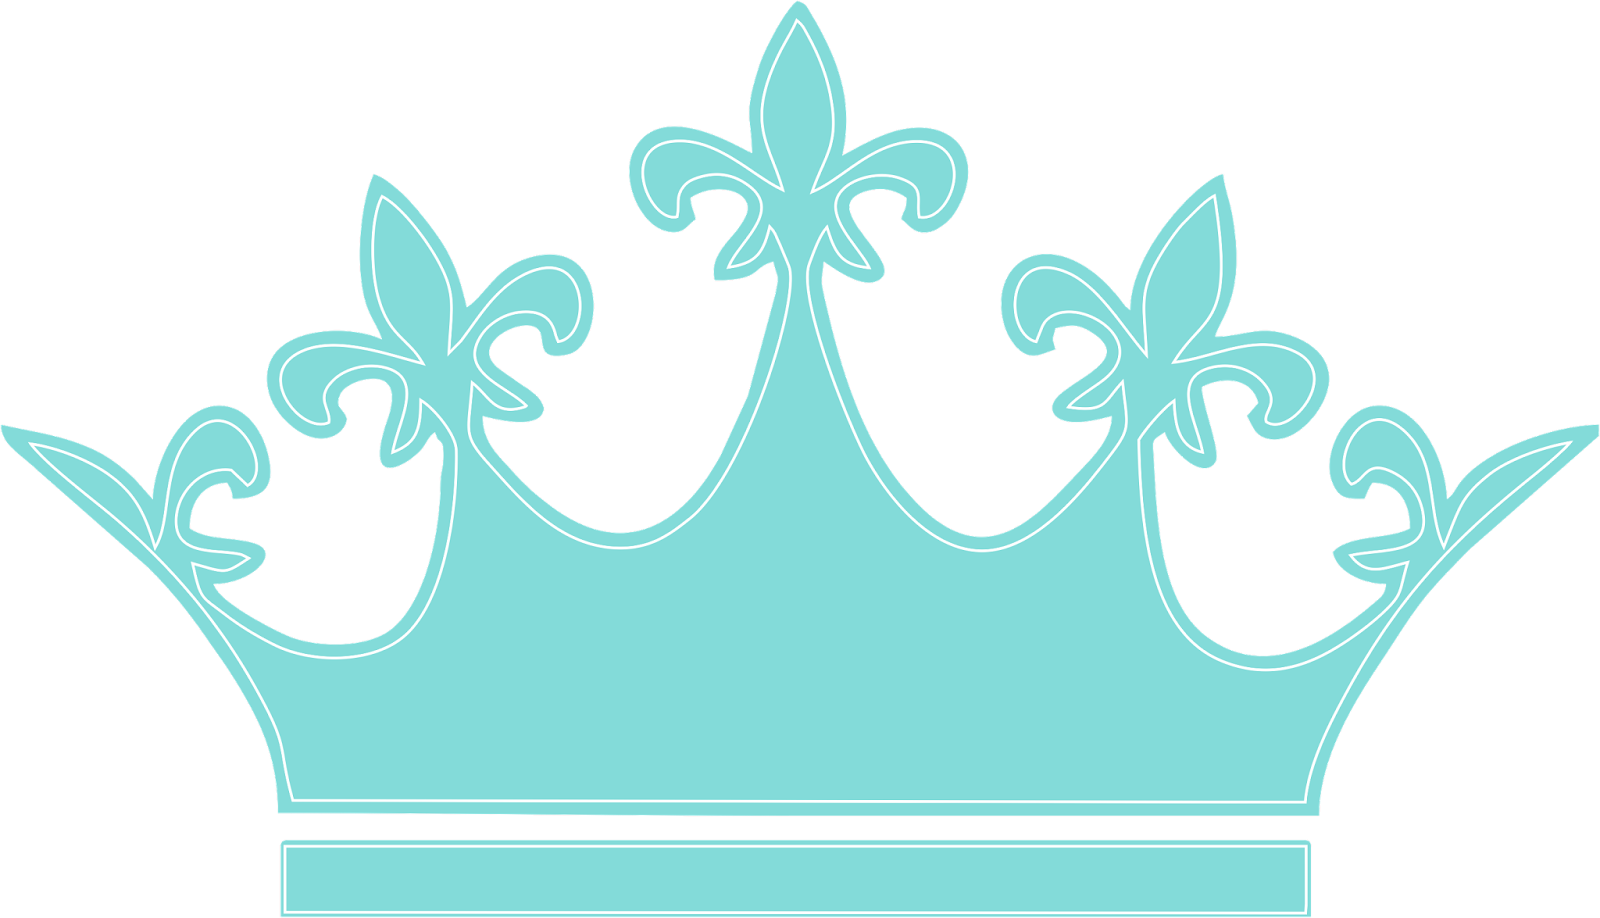 Clipart ornate crown beauty queen png freeuse stock Coroa imagem para montagens digitais | Pinterest | Layouts, Template ... png freeuse stock